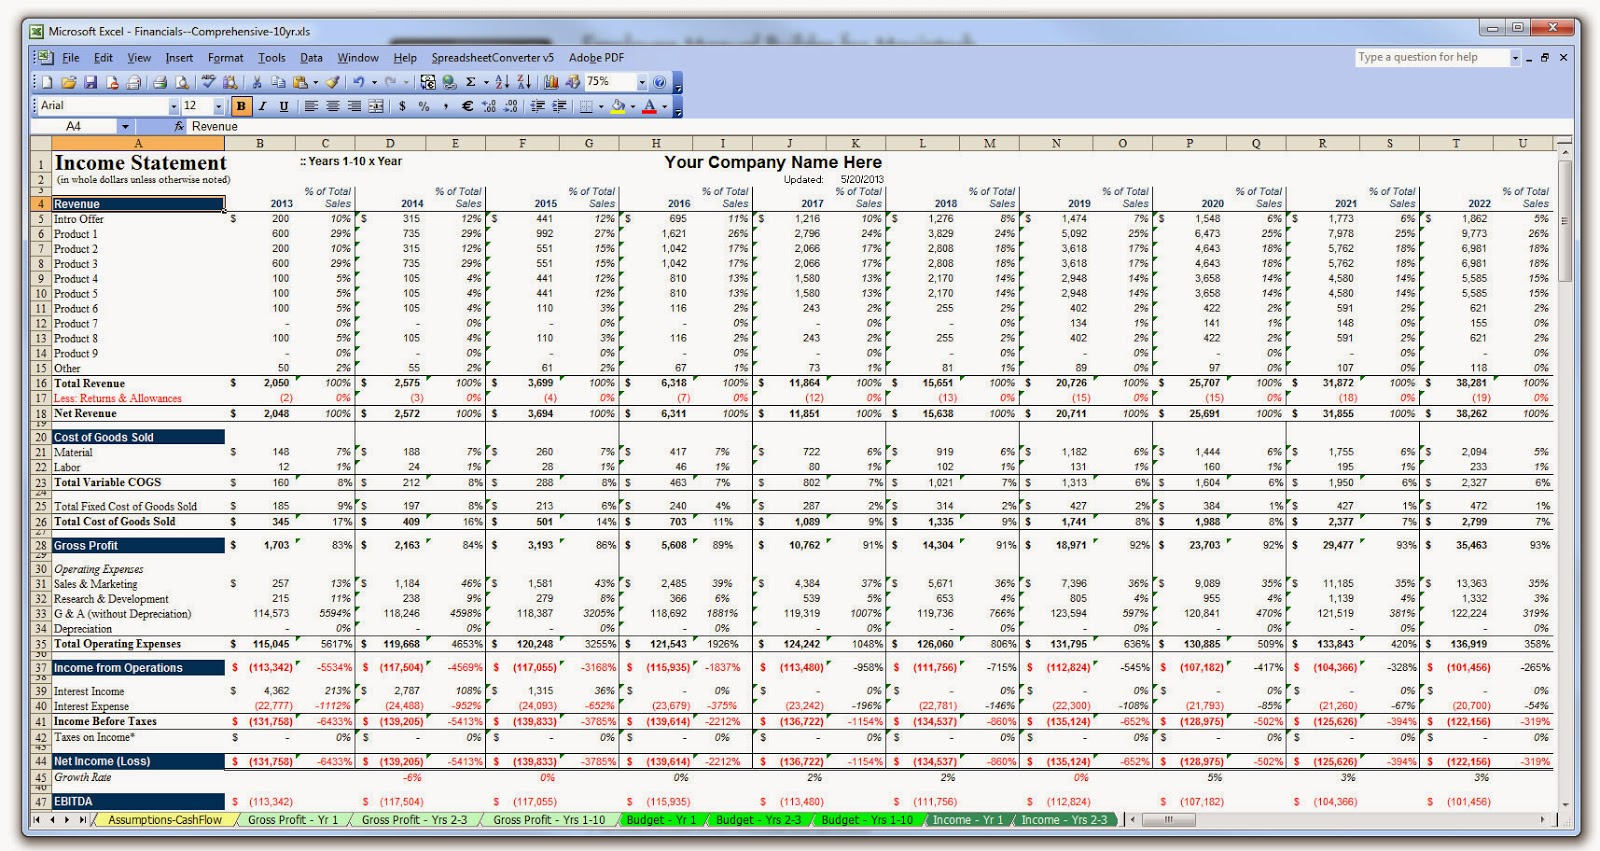 ... companies have financial models for forecasting developed in Excel